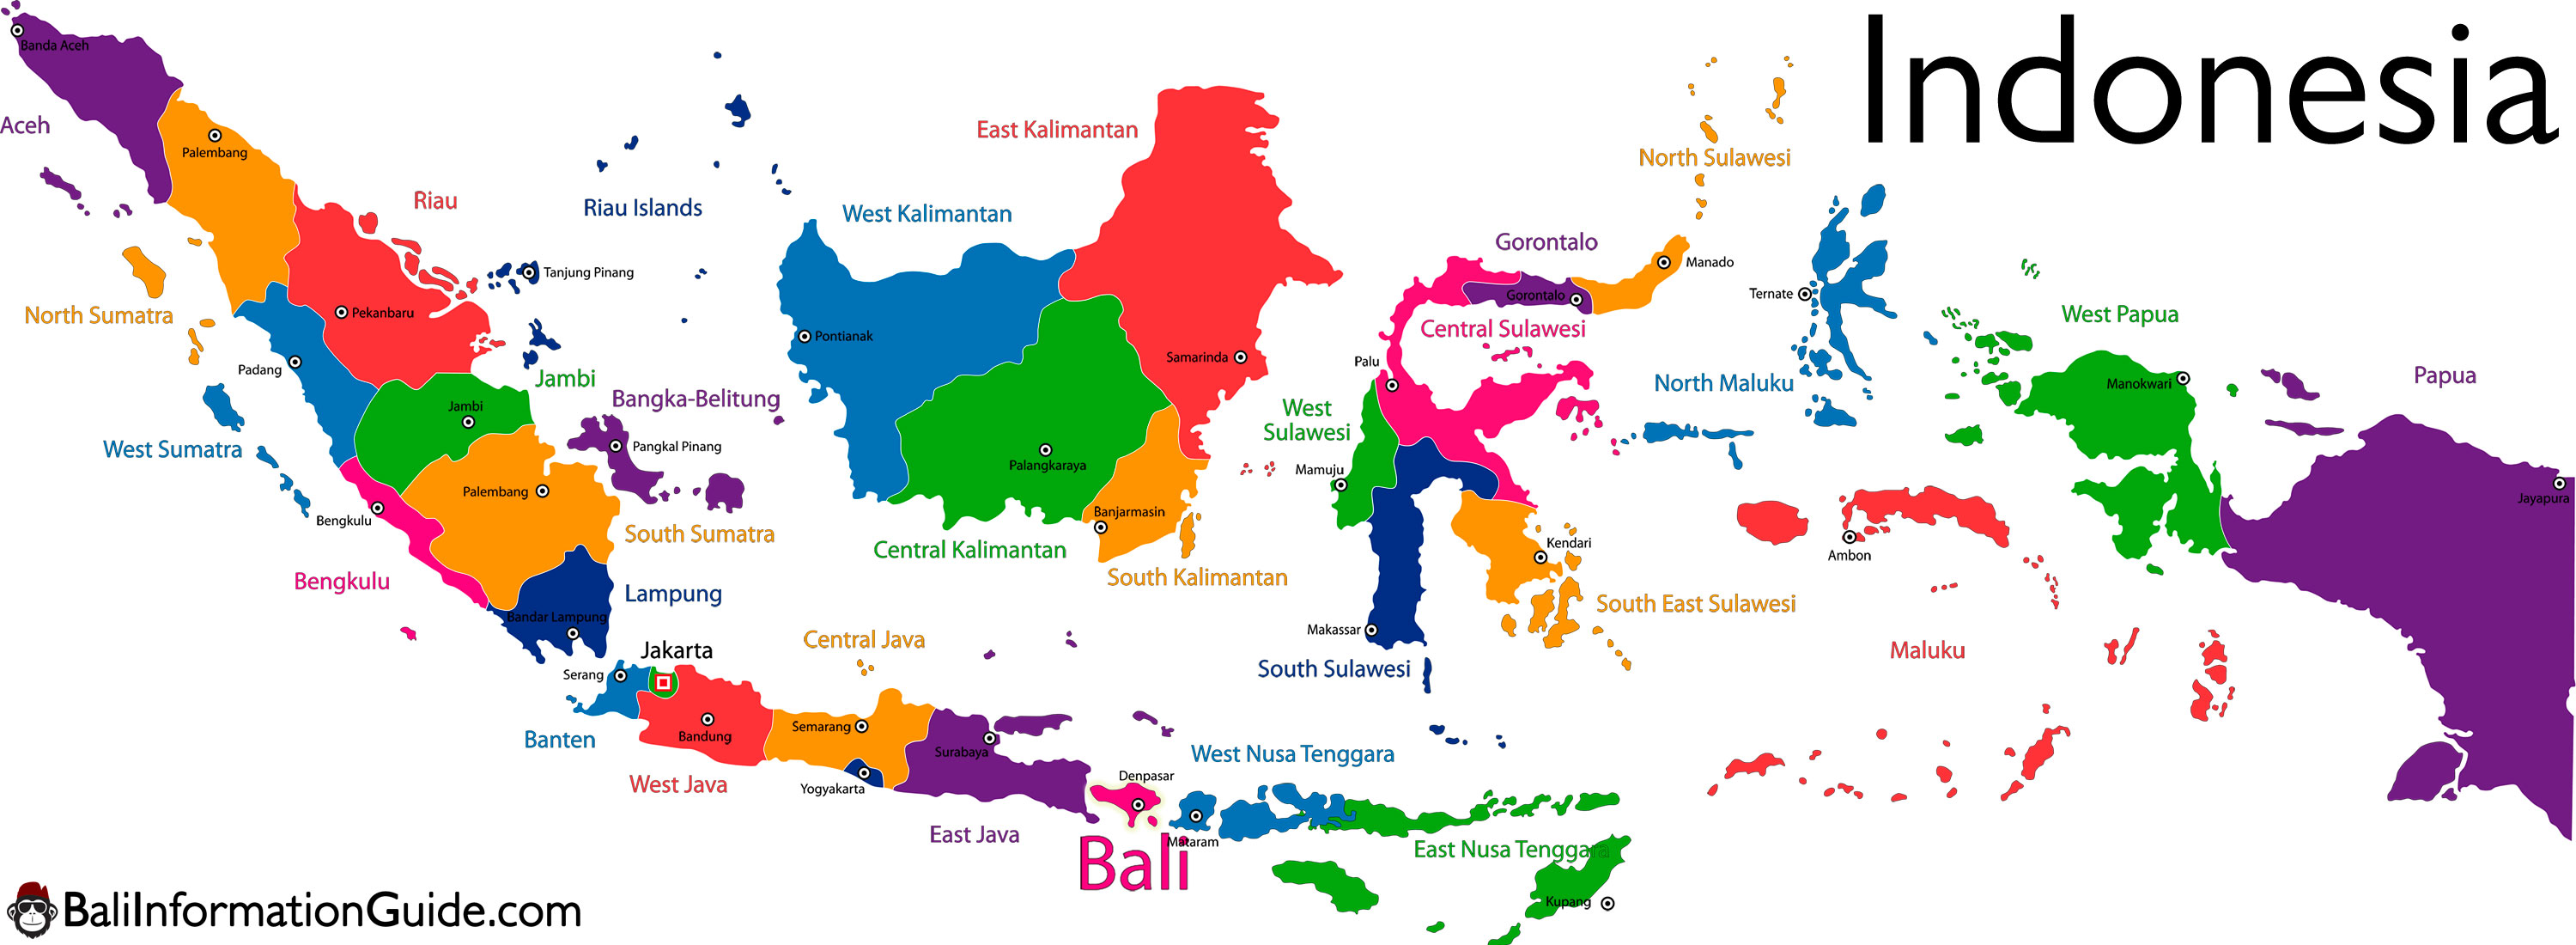 Bali Indonesia Map Where is Bali Indonesia? Detailed Maps of the island of region